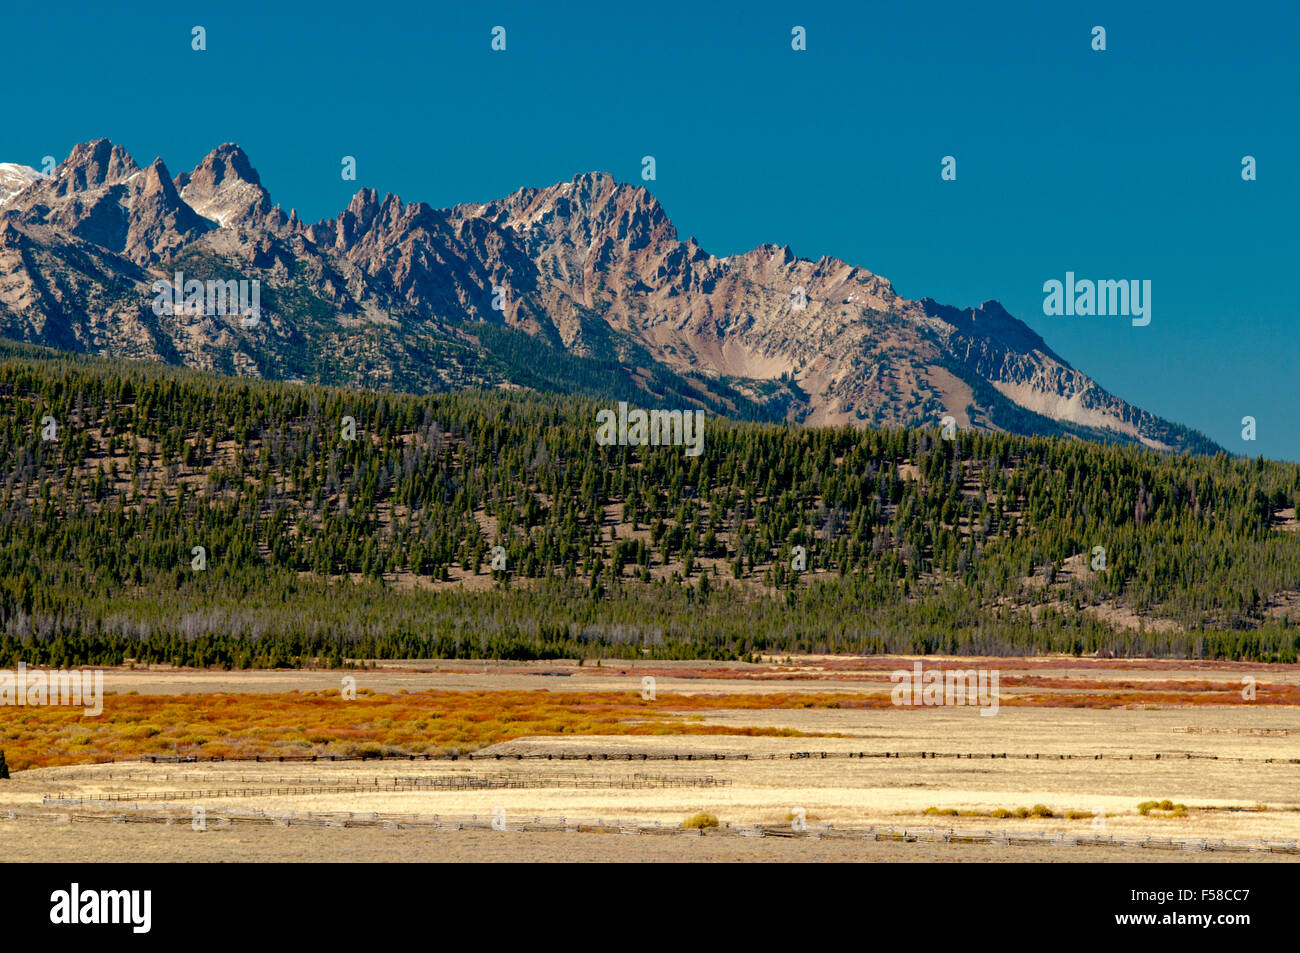 Sawtooth Mountains, lateral moraine, and Salmon River riparian corridor in Sawtooth Valley, Idaho - Stock Image